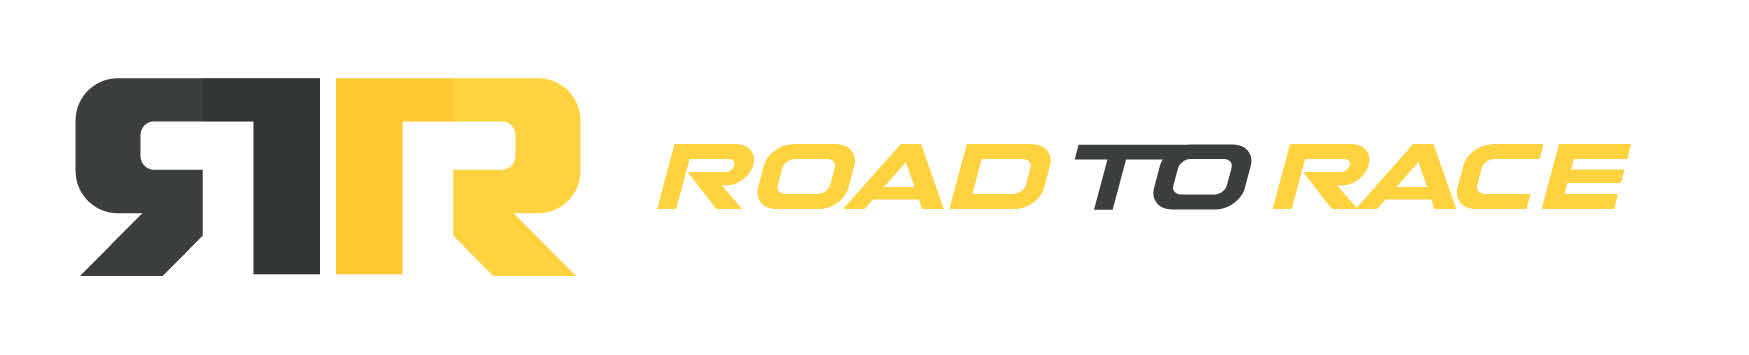 Road To Race Logo